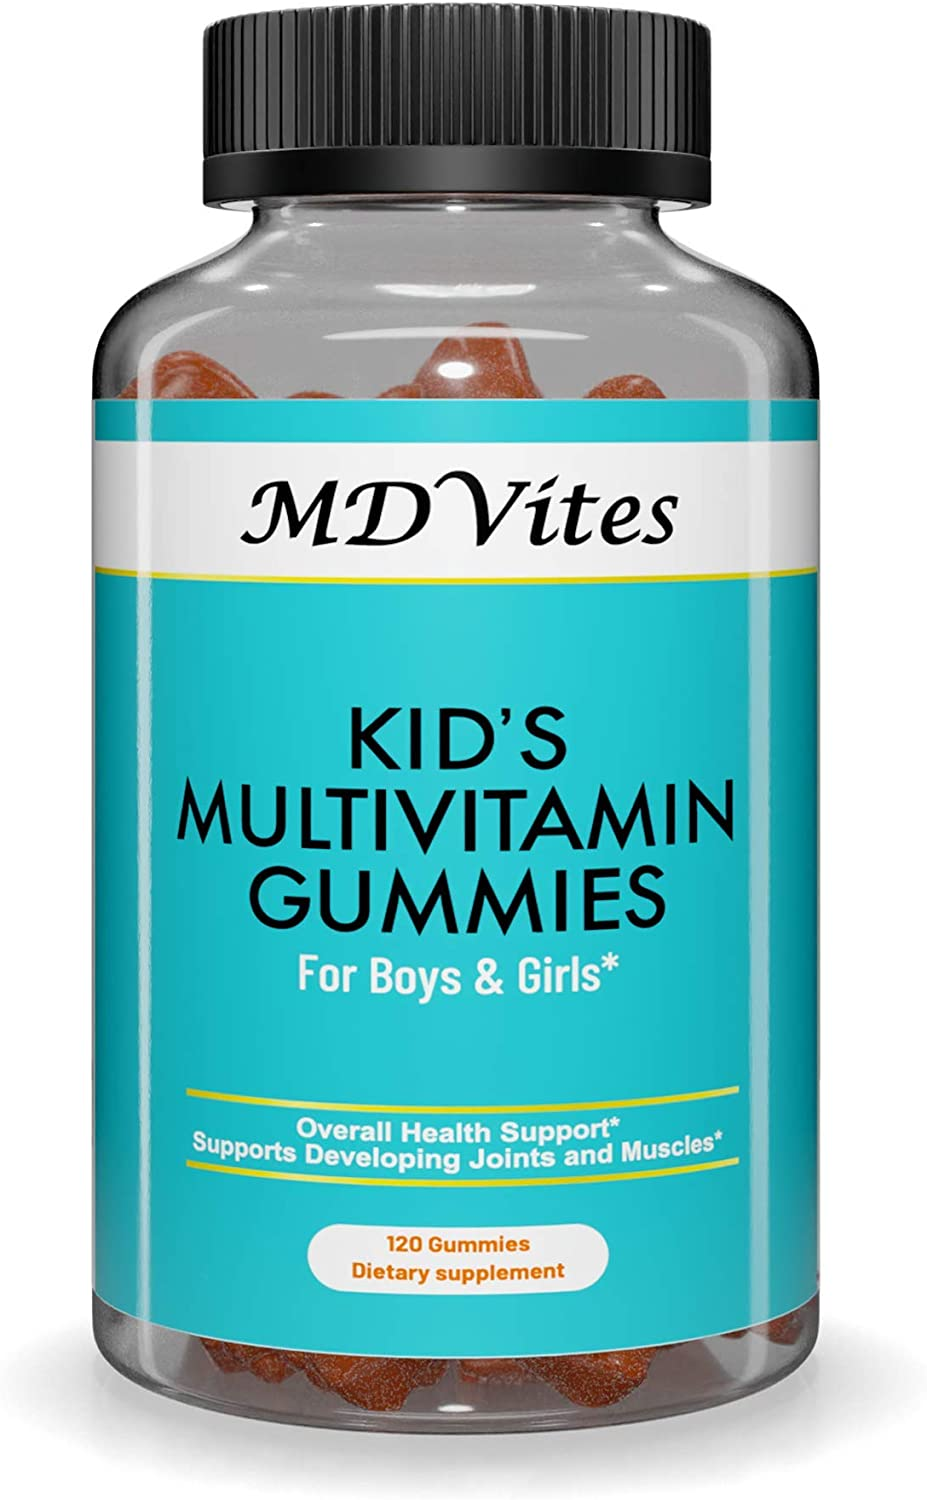 MDVites Kids Multivitamin Gummies, with Zinc, Vitamin C and D for Immune Support, Vitamins A, E, B6 and B12.